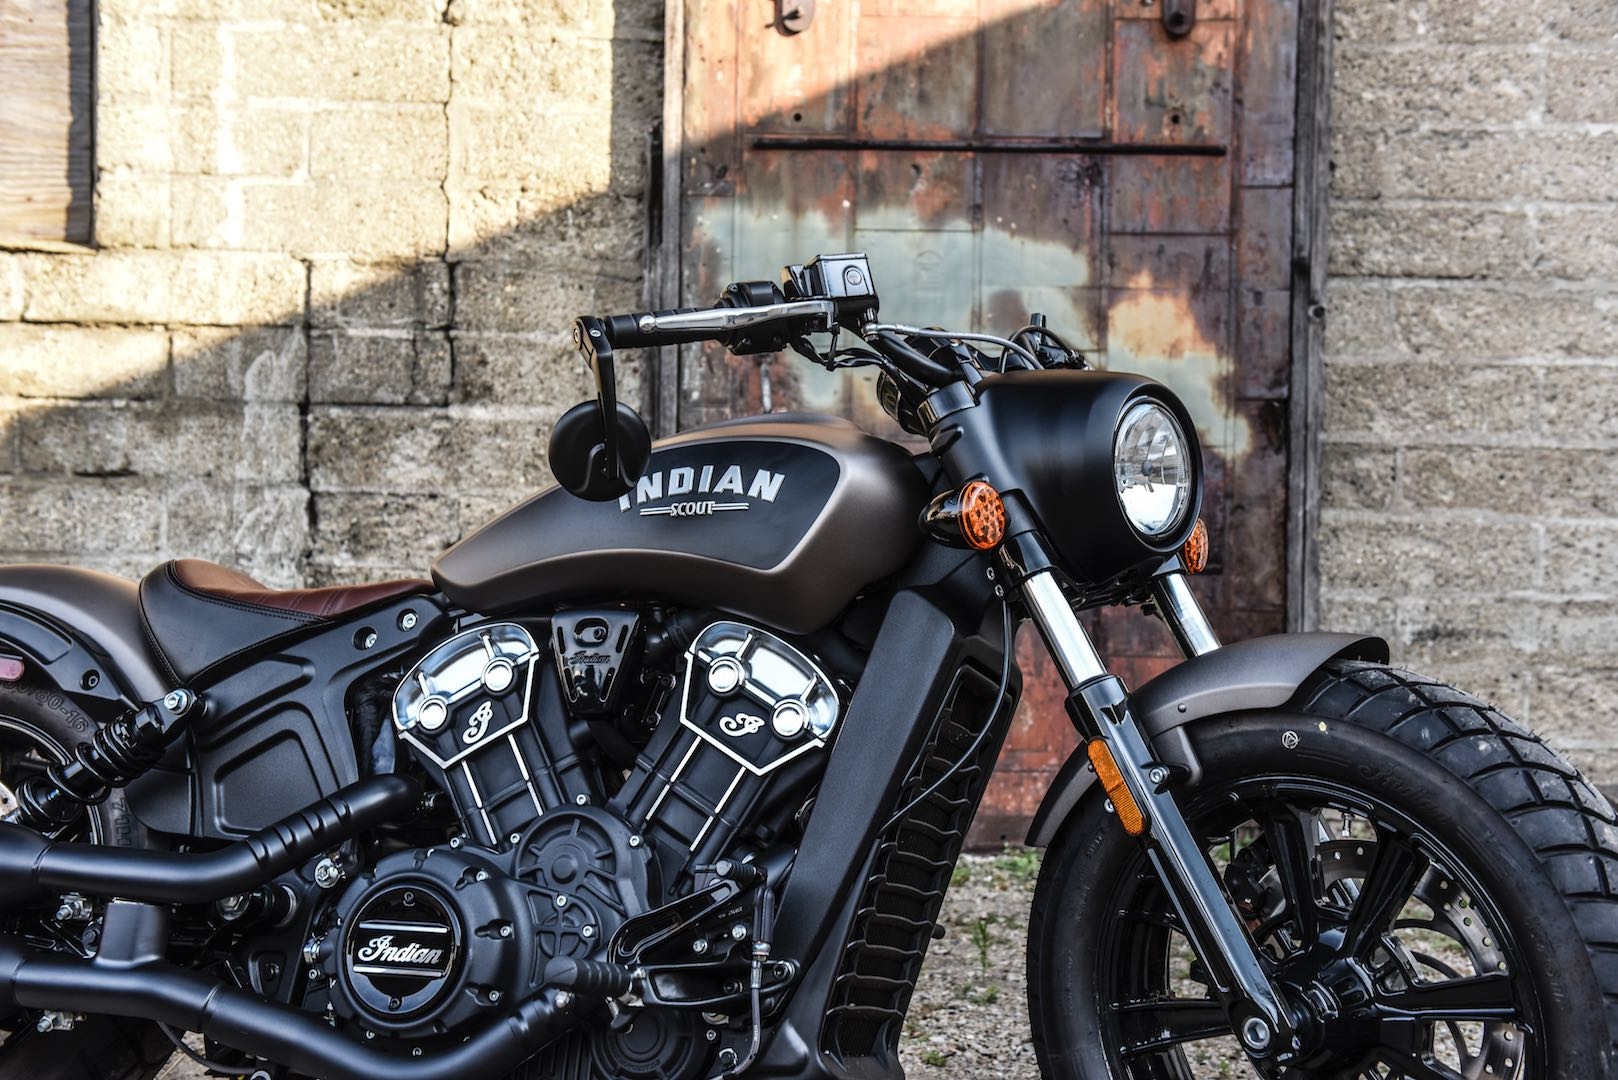 2018 Indian Scout Bobber